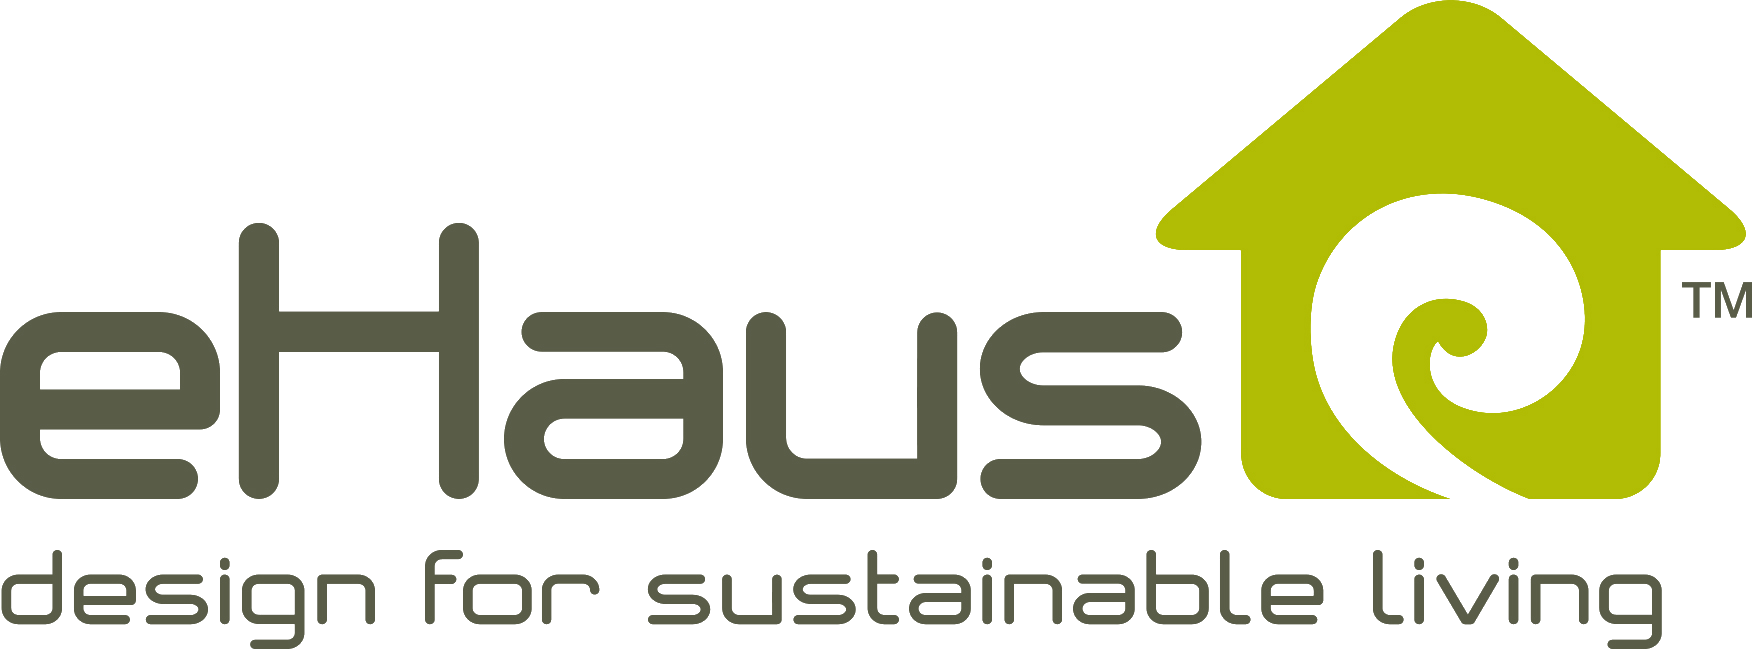 New Zealand's leader in house design to the Passive House standard. Achieve a new level of comfort, health, and energy efficiency by building eHaus.